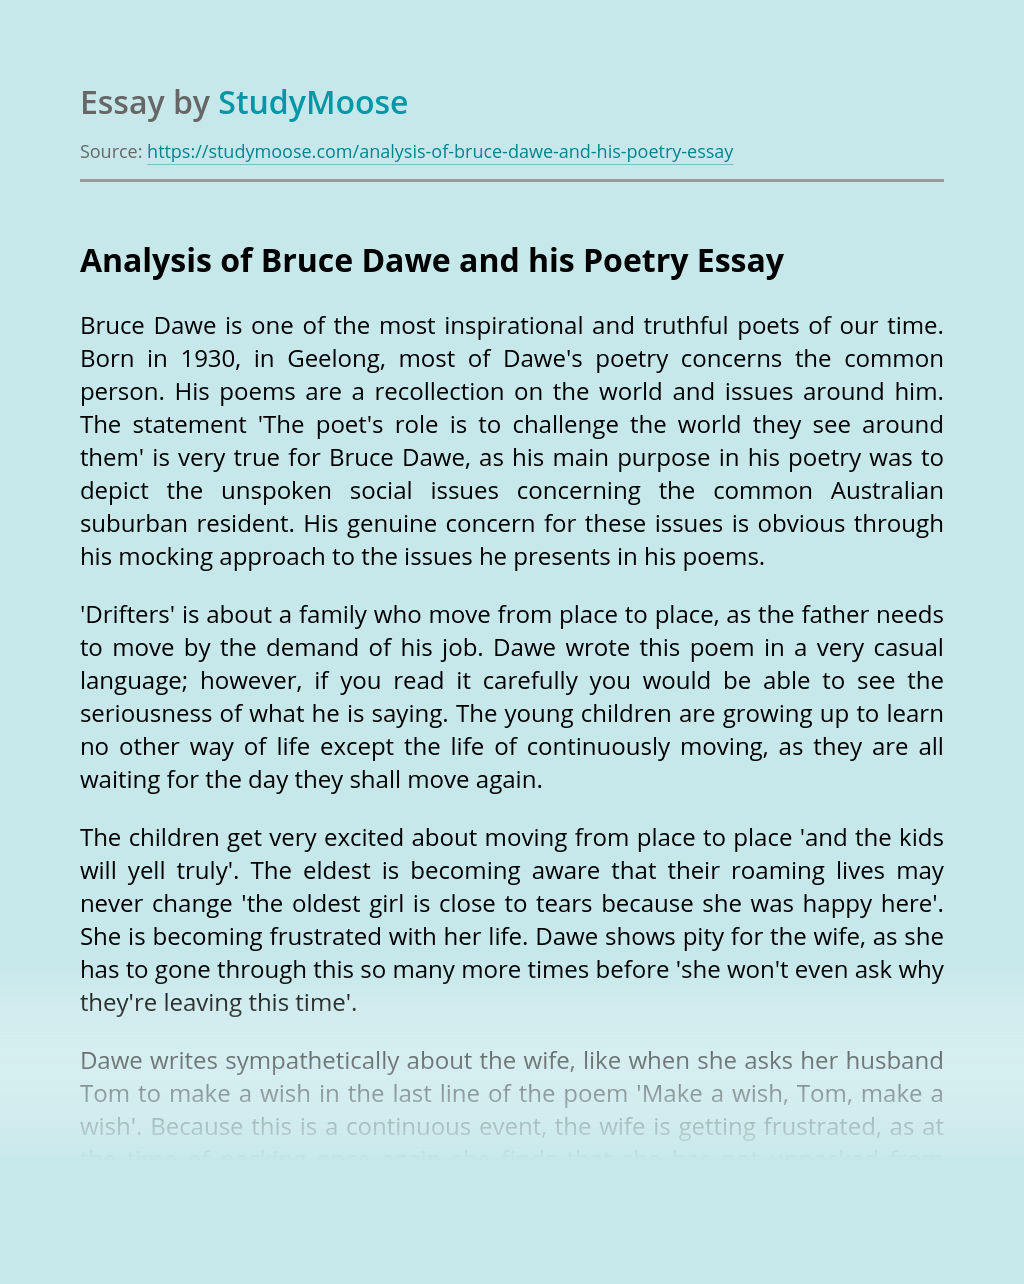 Analysis of Bruce Dawe and his Poetry